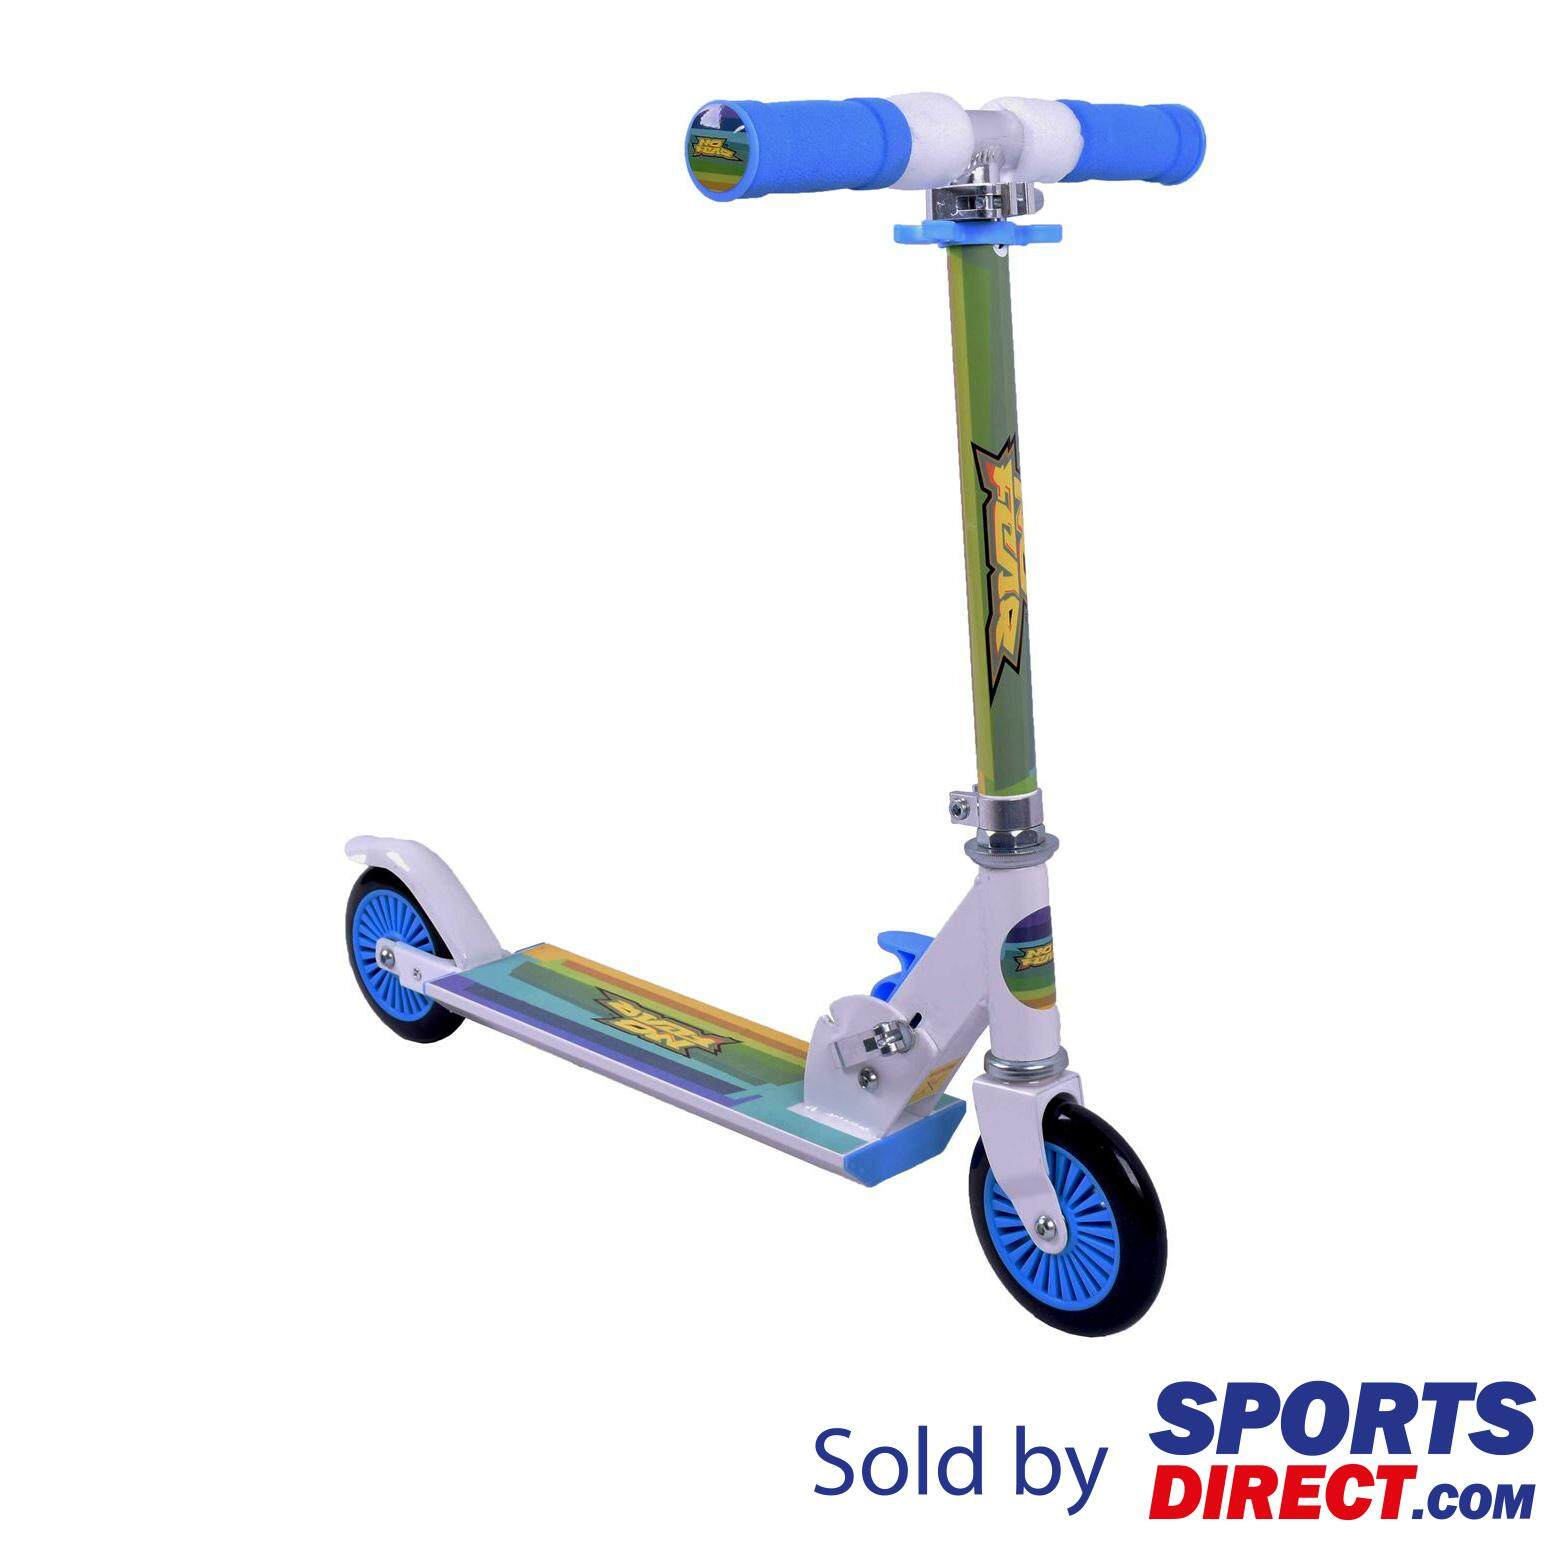 No Fear Kids Scooter (black/green) By Sports Direct Mst Sdn Bhd.